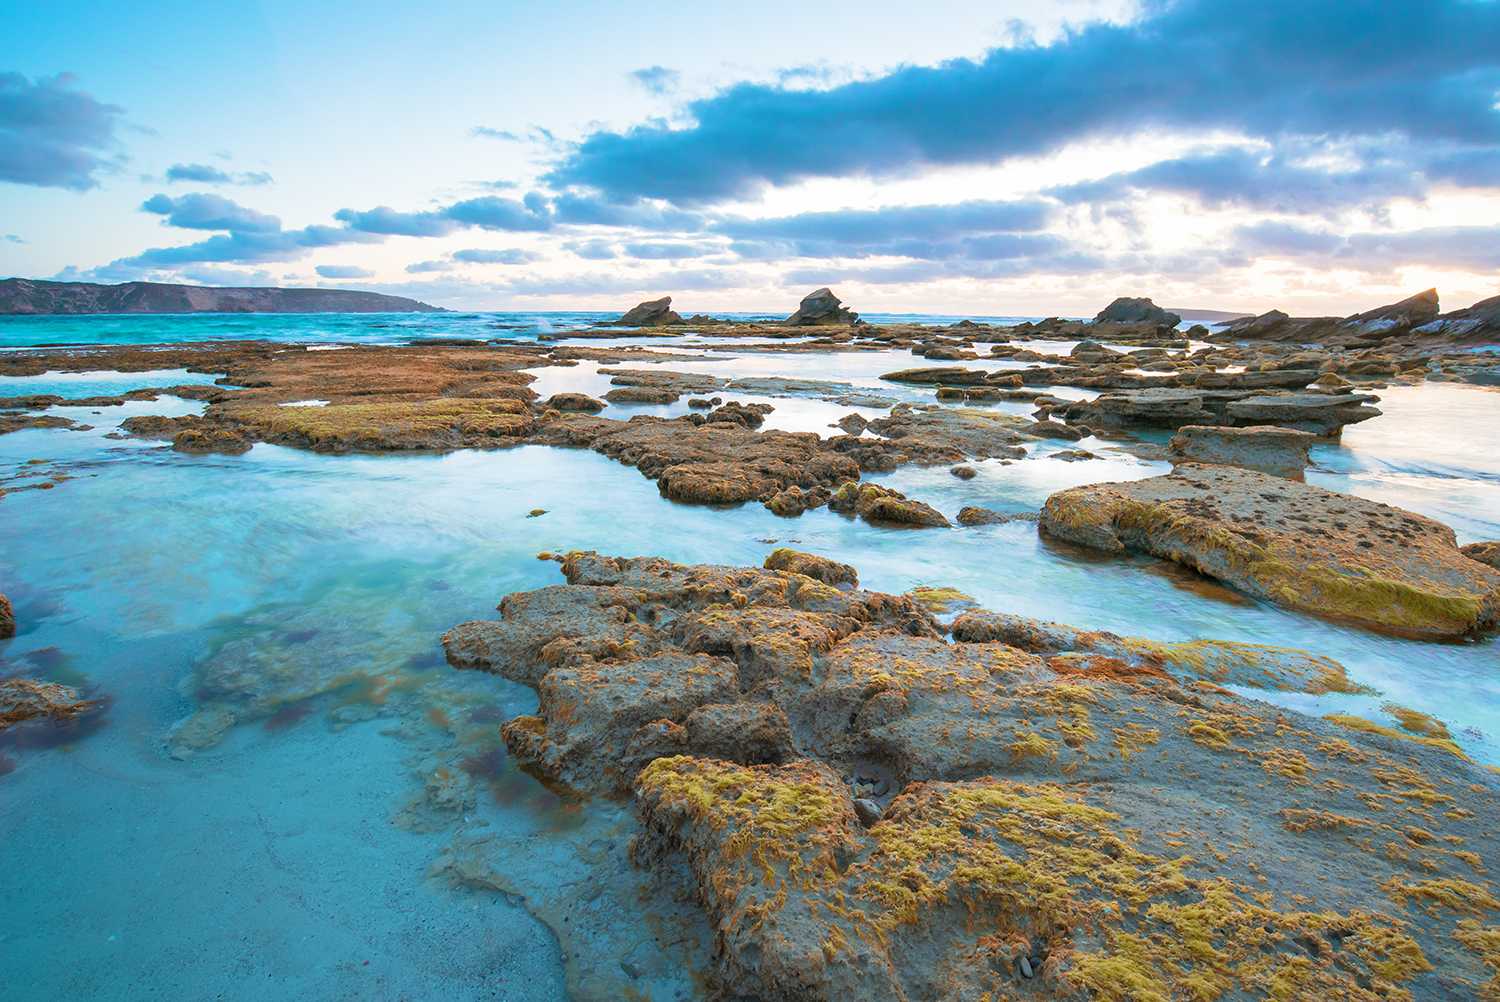 Australian scenery landscapes and seascapes for South australia landscape